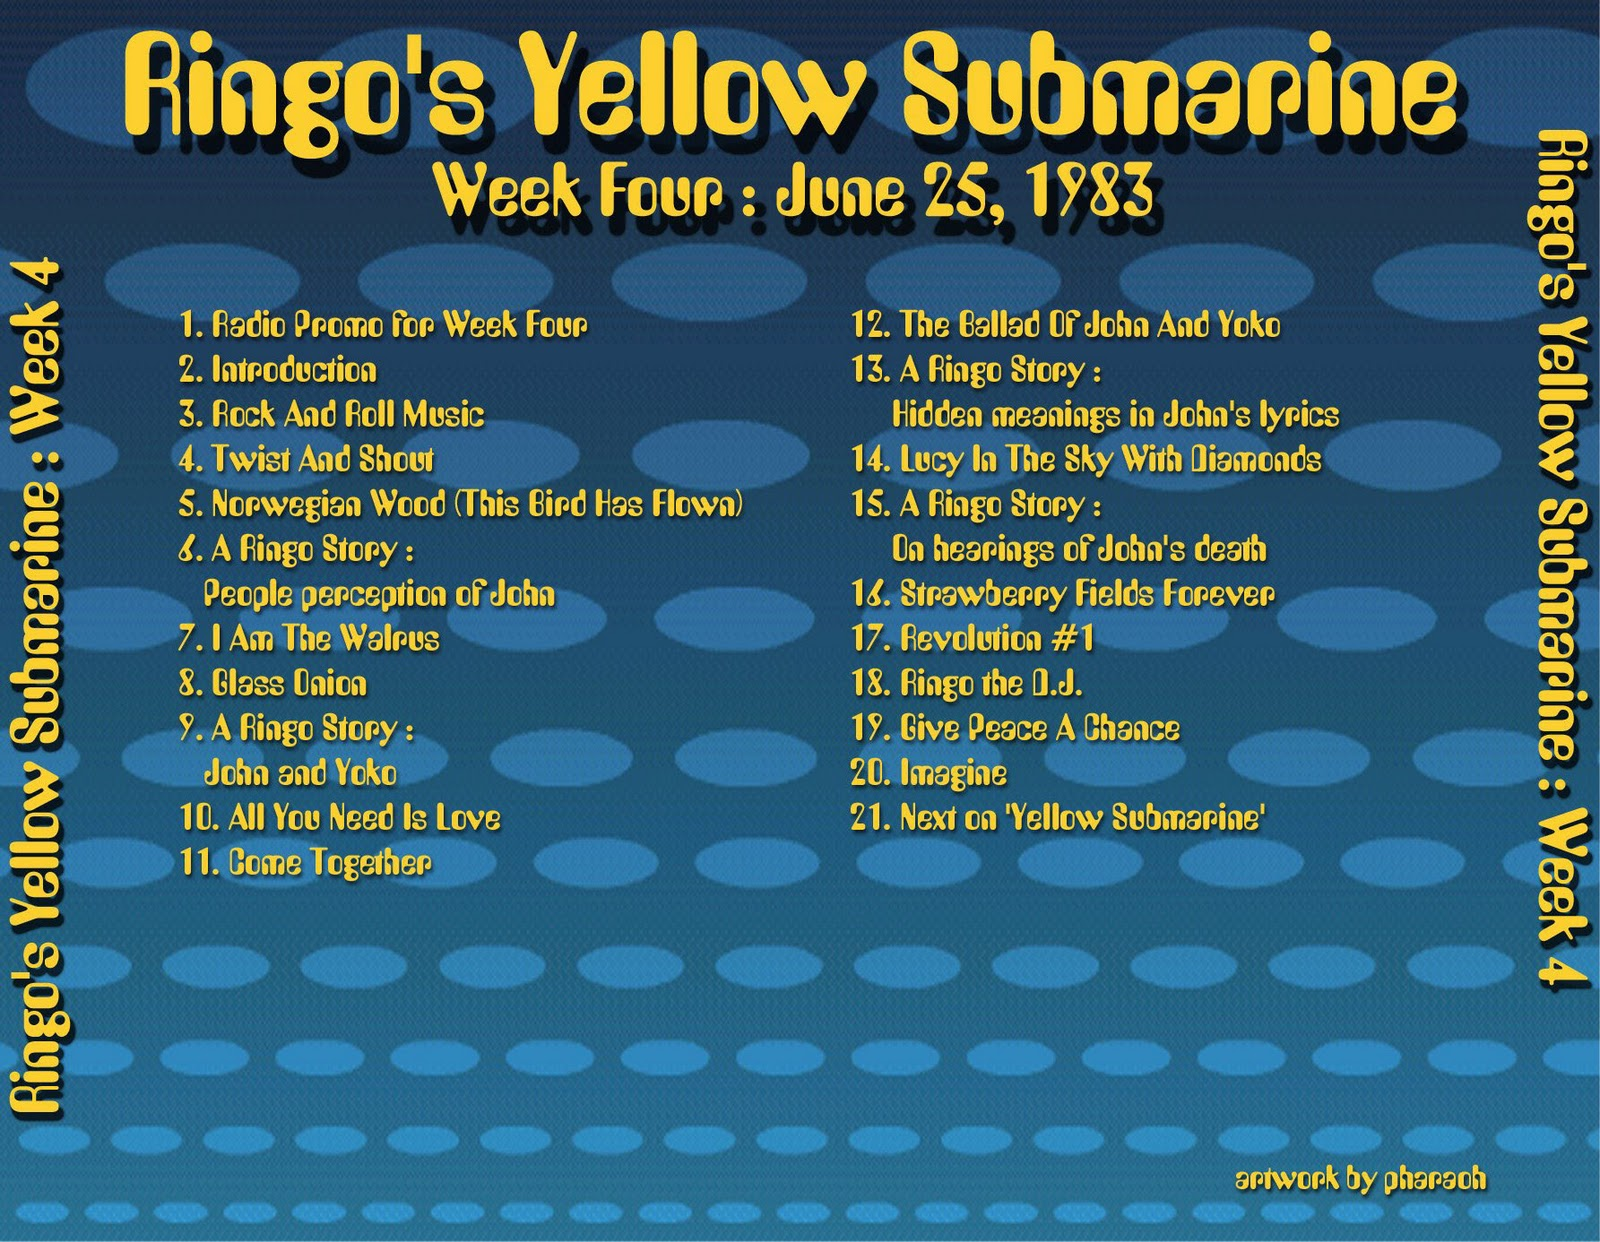 Beatles Radio Waves: 1983 06 25 - Ringo's Yellow Submarine 04